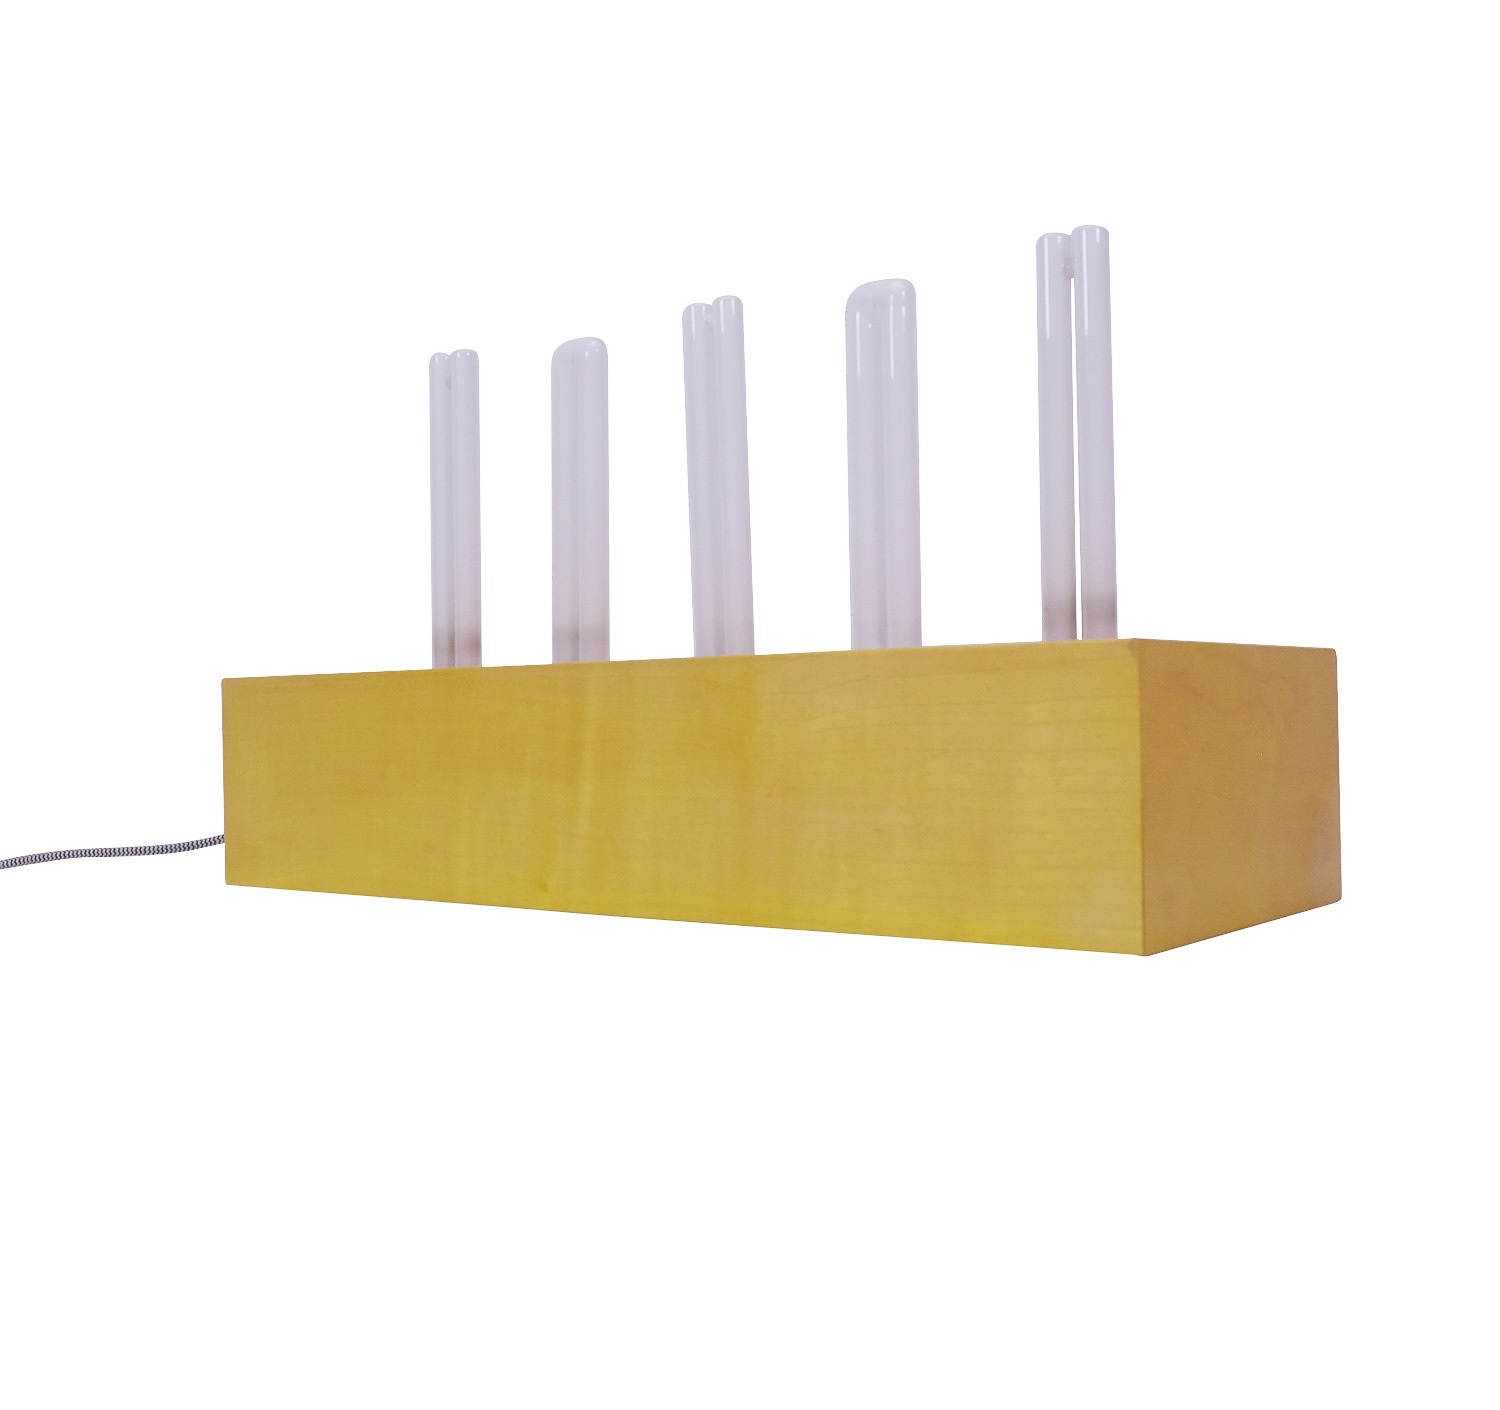 Sottsass Pattica Lamp Post Design made in Italy